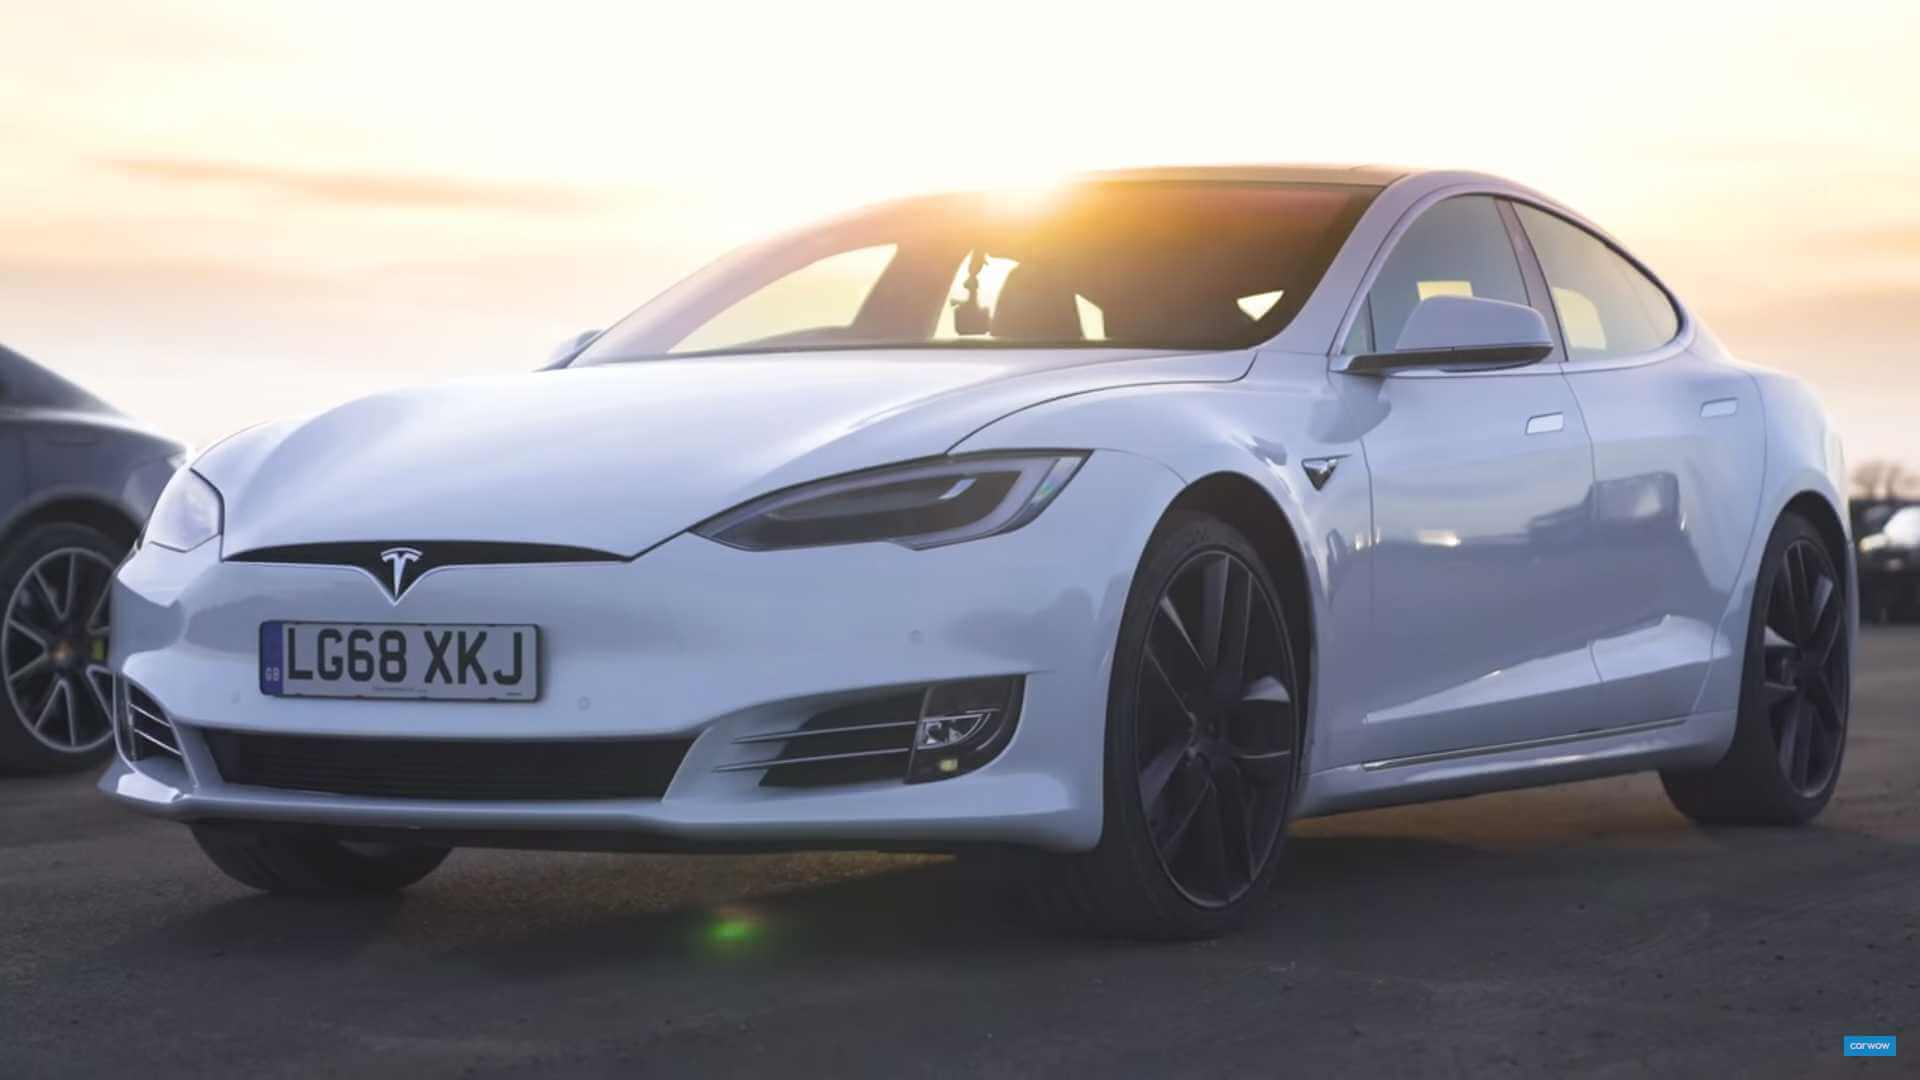 The World's Largest Electric Car Company Tesla Is Coming ...